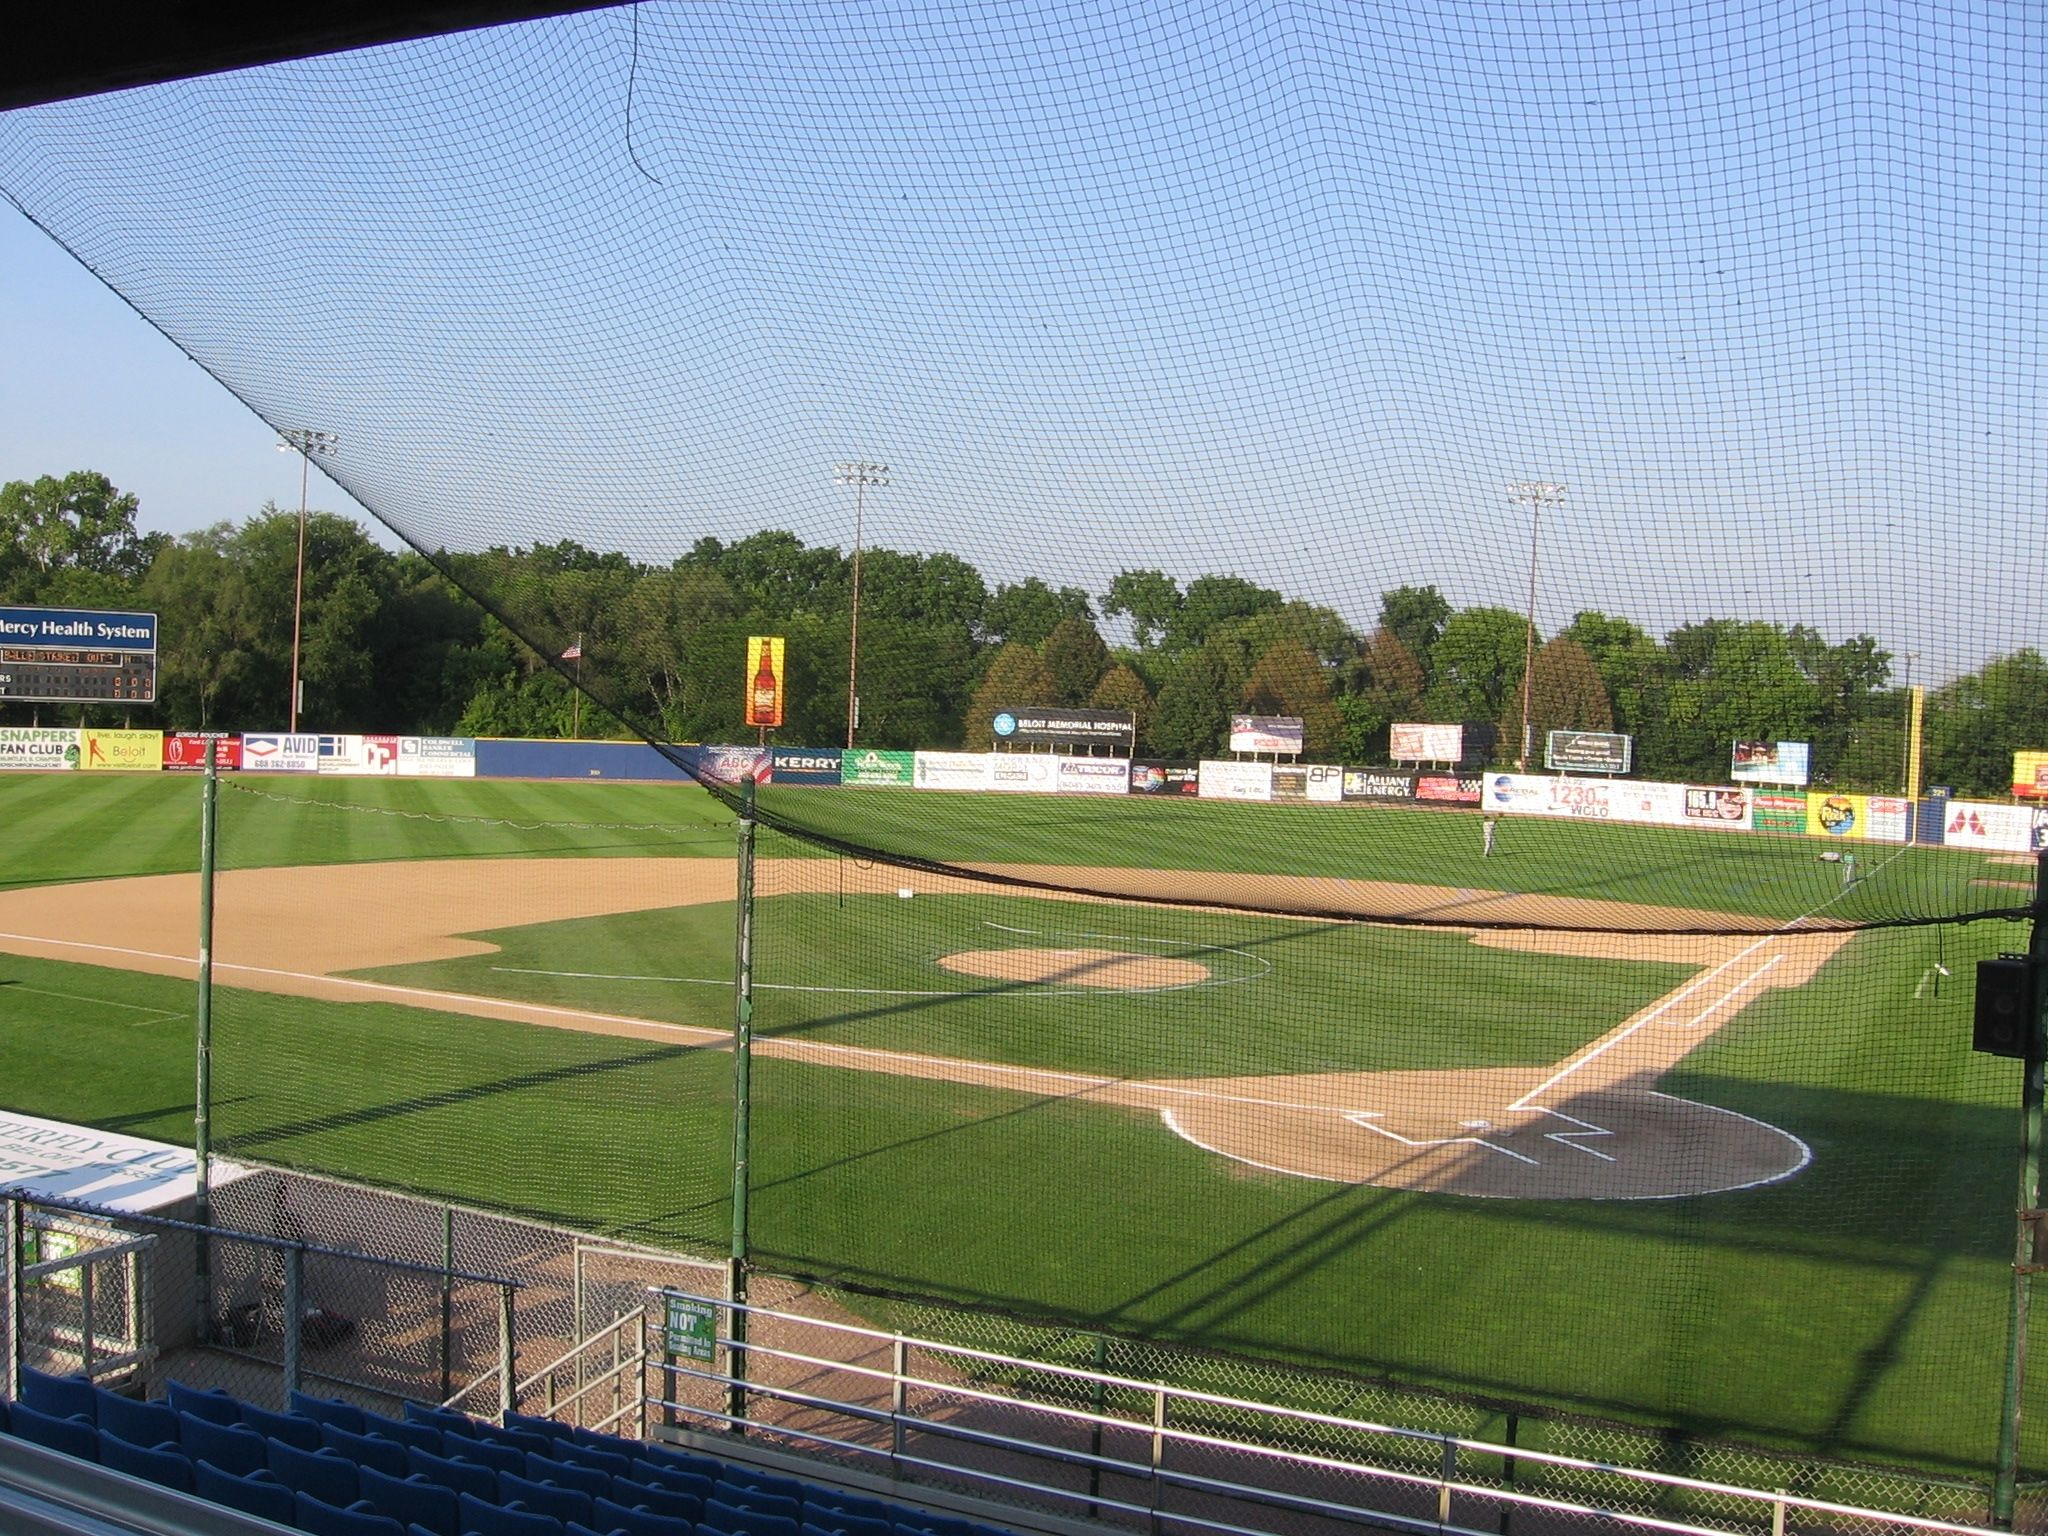 Harry C Pohlman Field In Beloit Wisconsin Home To The Beloit Brewers Of The Midwest League They Were The Single A Af Beloit Wisconsin Beloit Places To Go